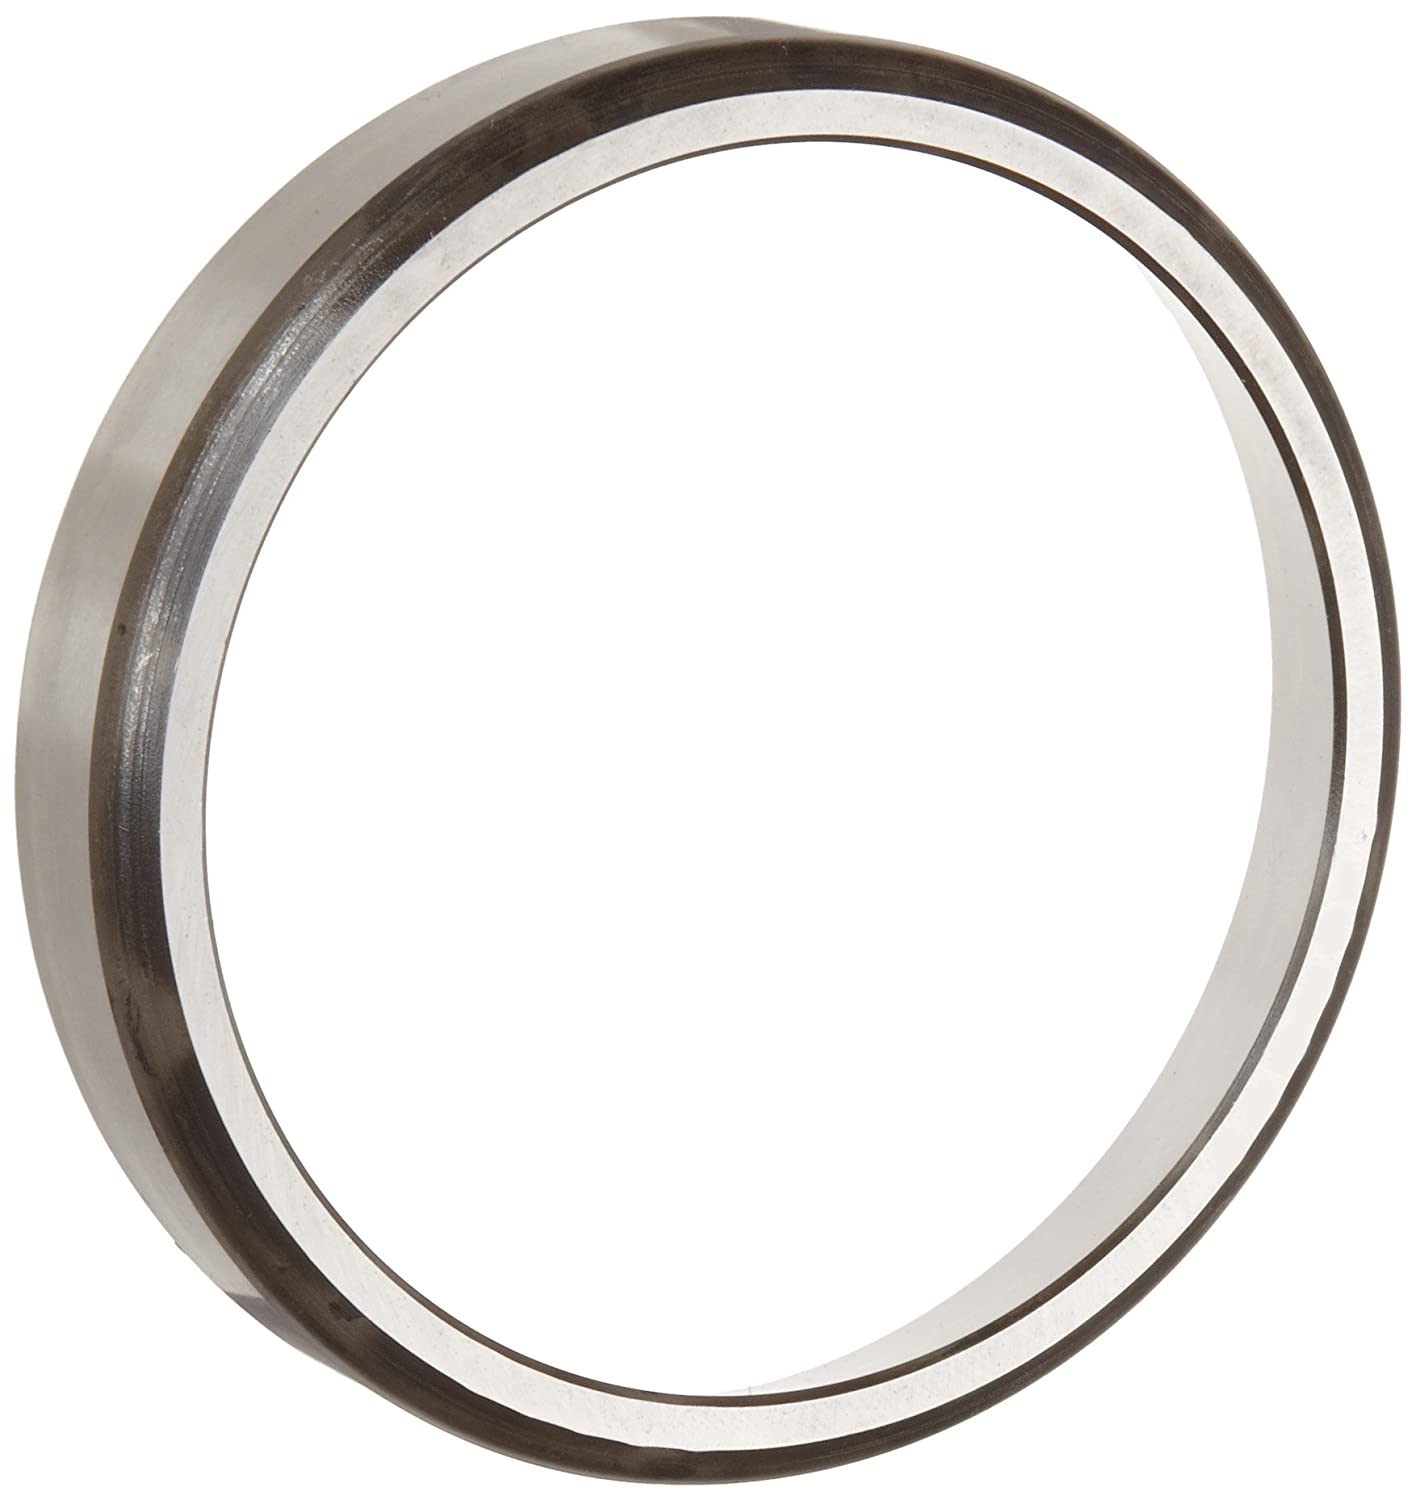 SINGLE CUP STRAIGHT O... STANDARD TOLERANCE TIMKEN 353 TAPERED ROLLER BEARING